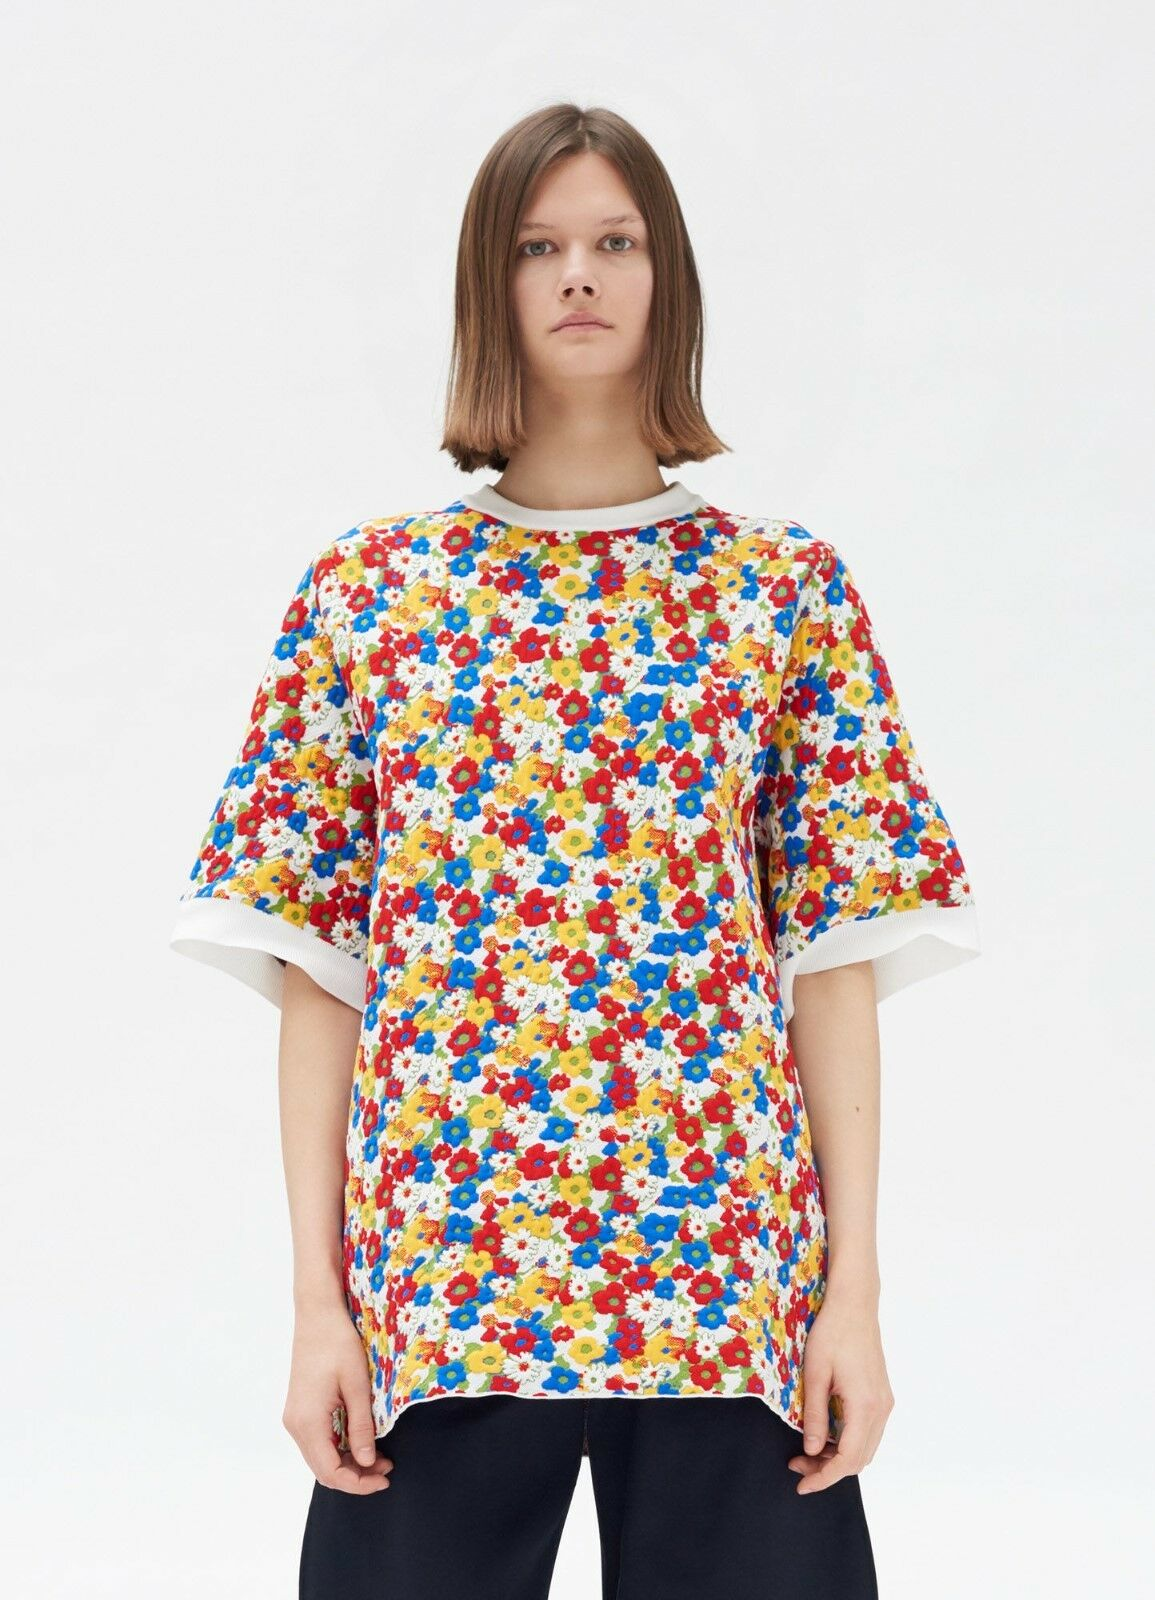 CELINE by Phoebe Philo 1600  New Polo Sweater In Multicolour Small Flowers Print